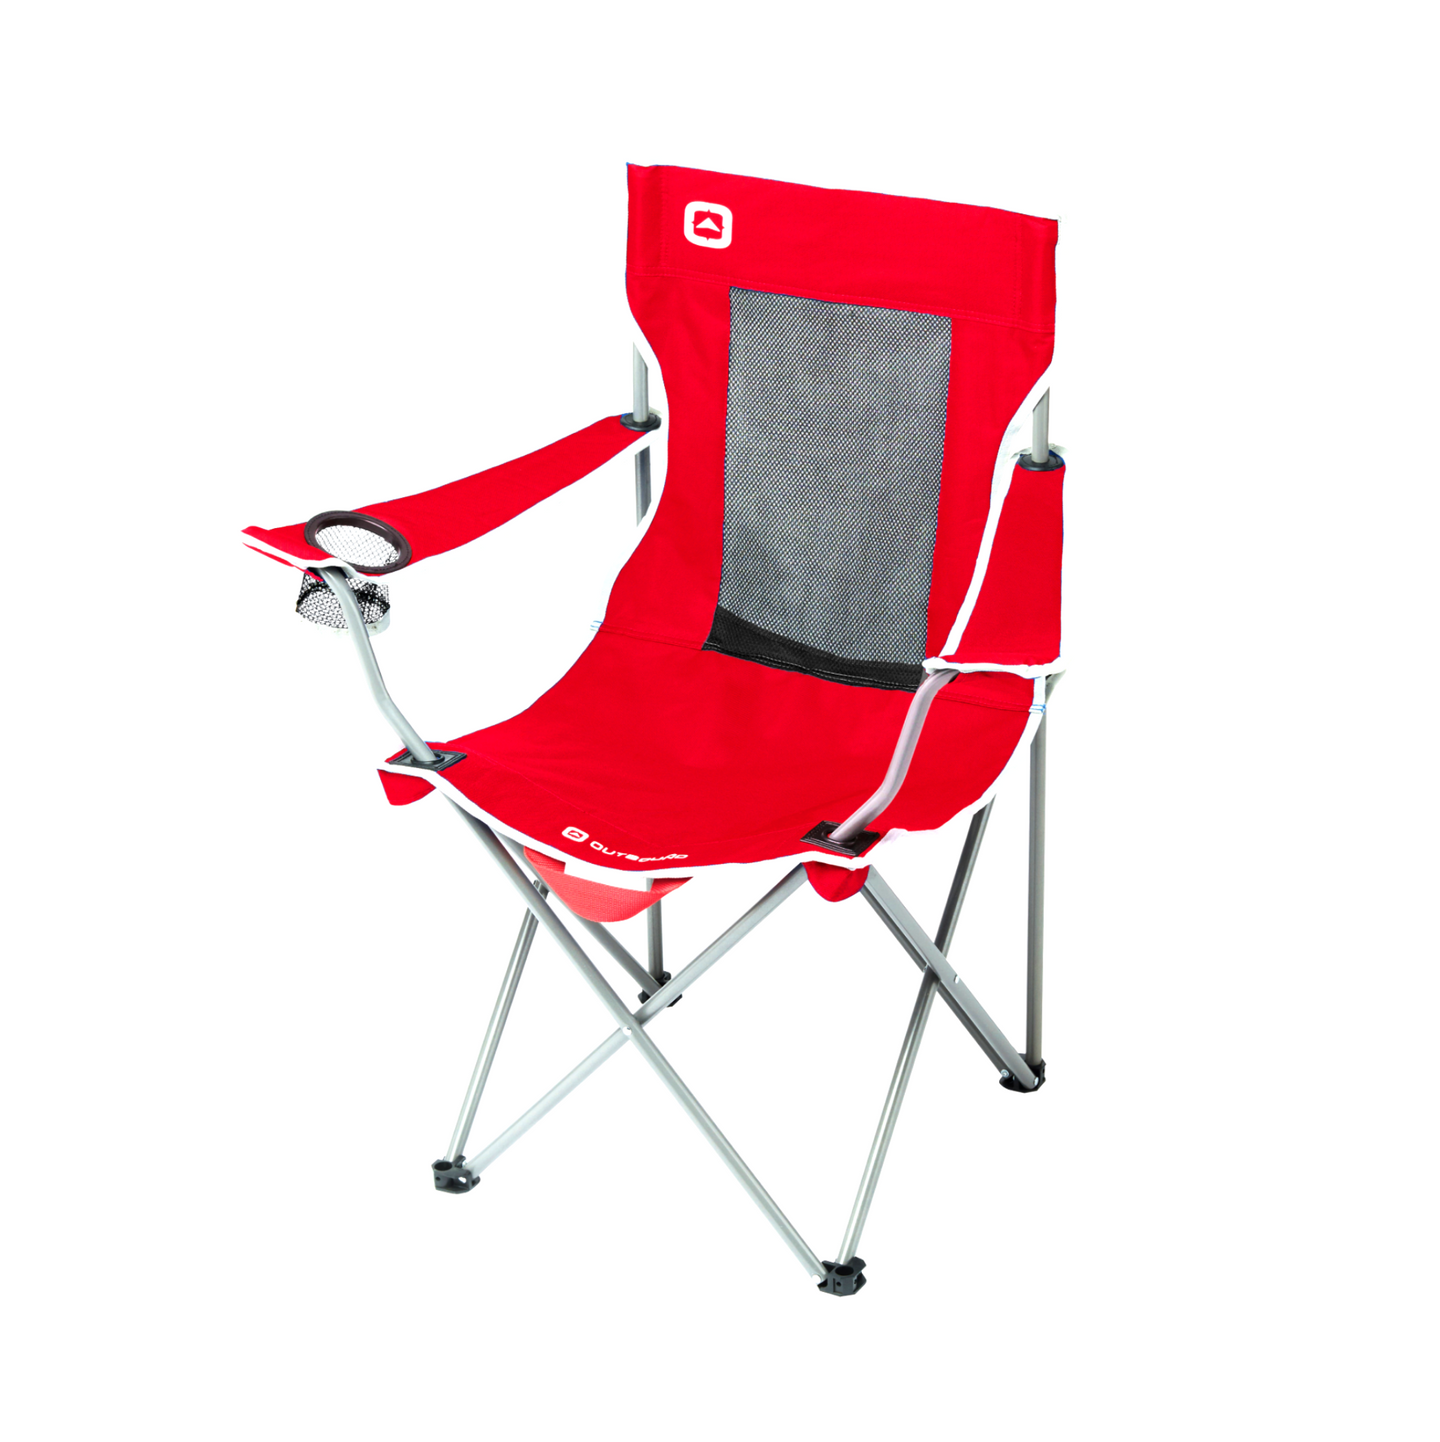 Outbound Folding Quad Camping Chair with Mesh Back and Cup Holder - Red